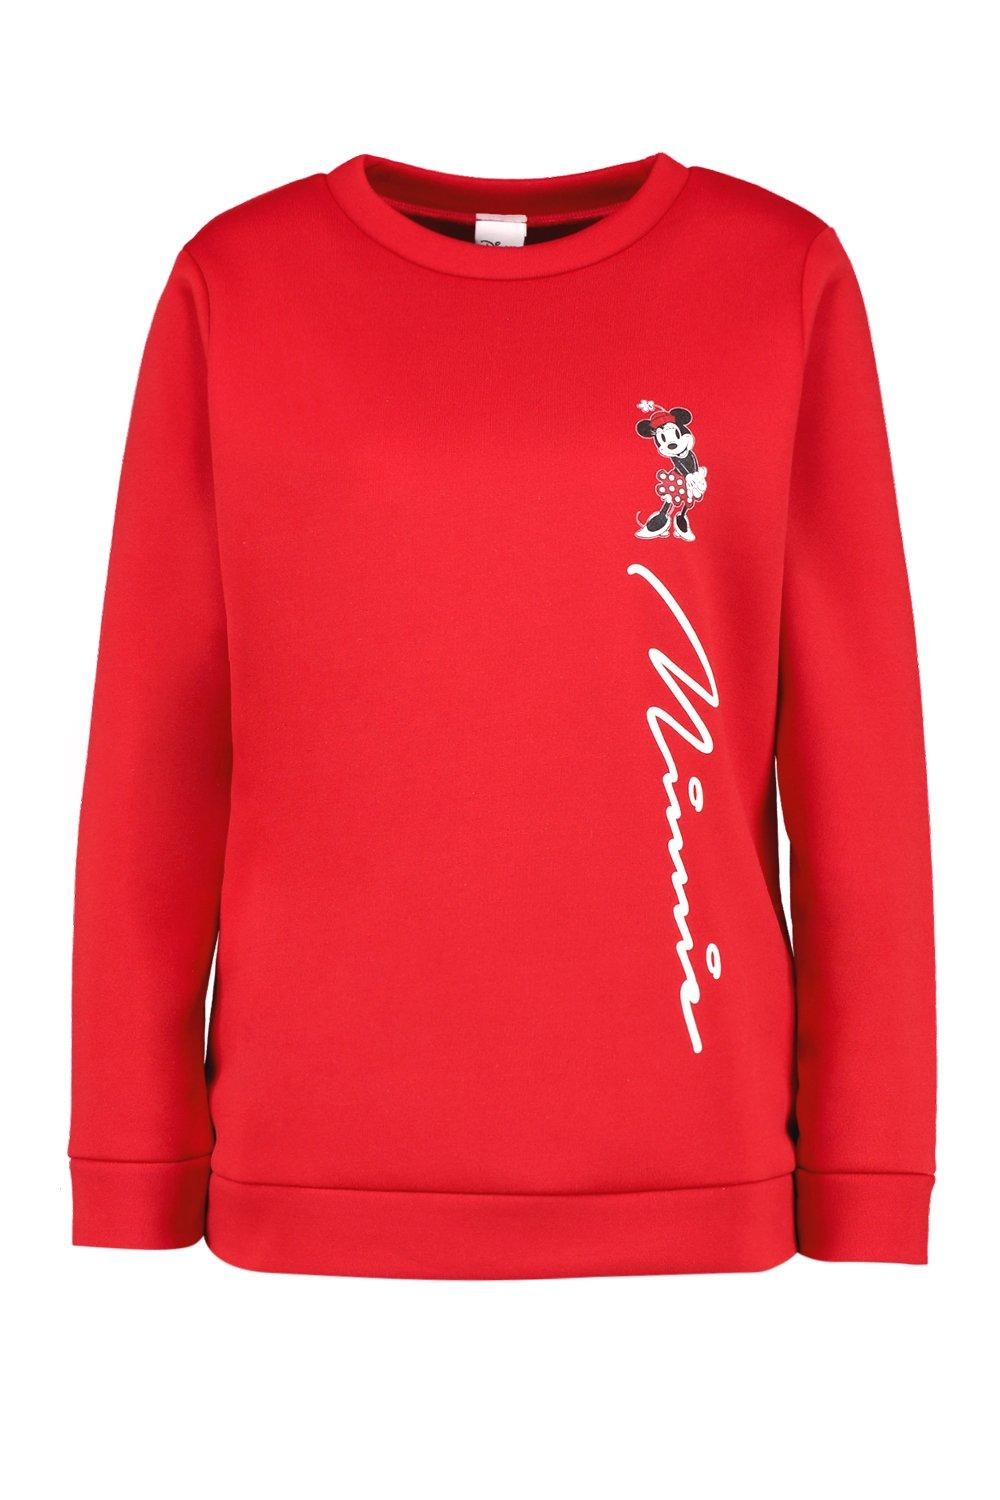 Sweater Script Disney Crew Minnie Neck red RqwvfI